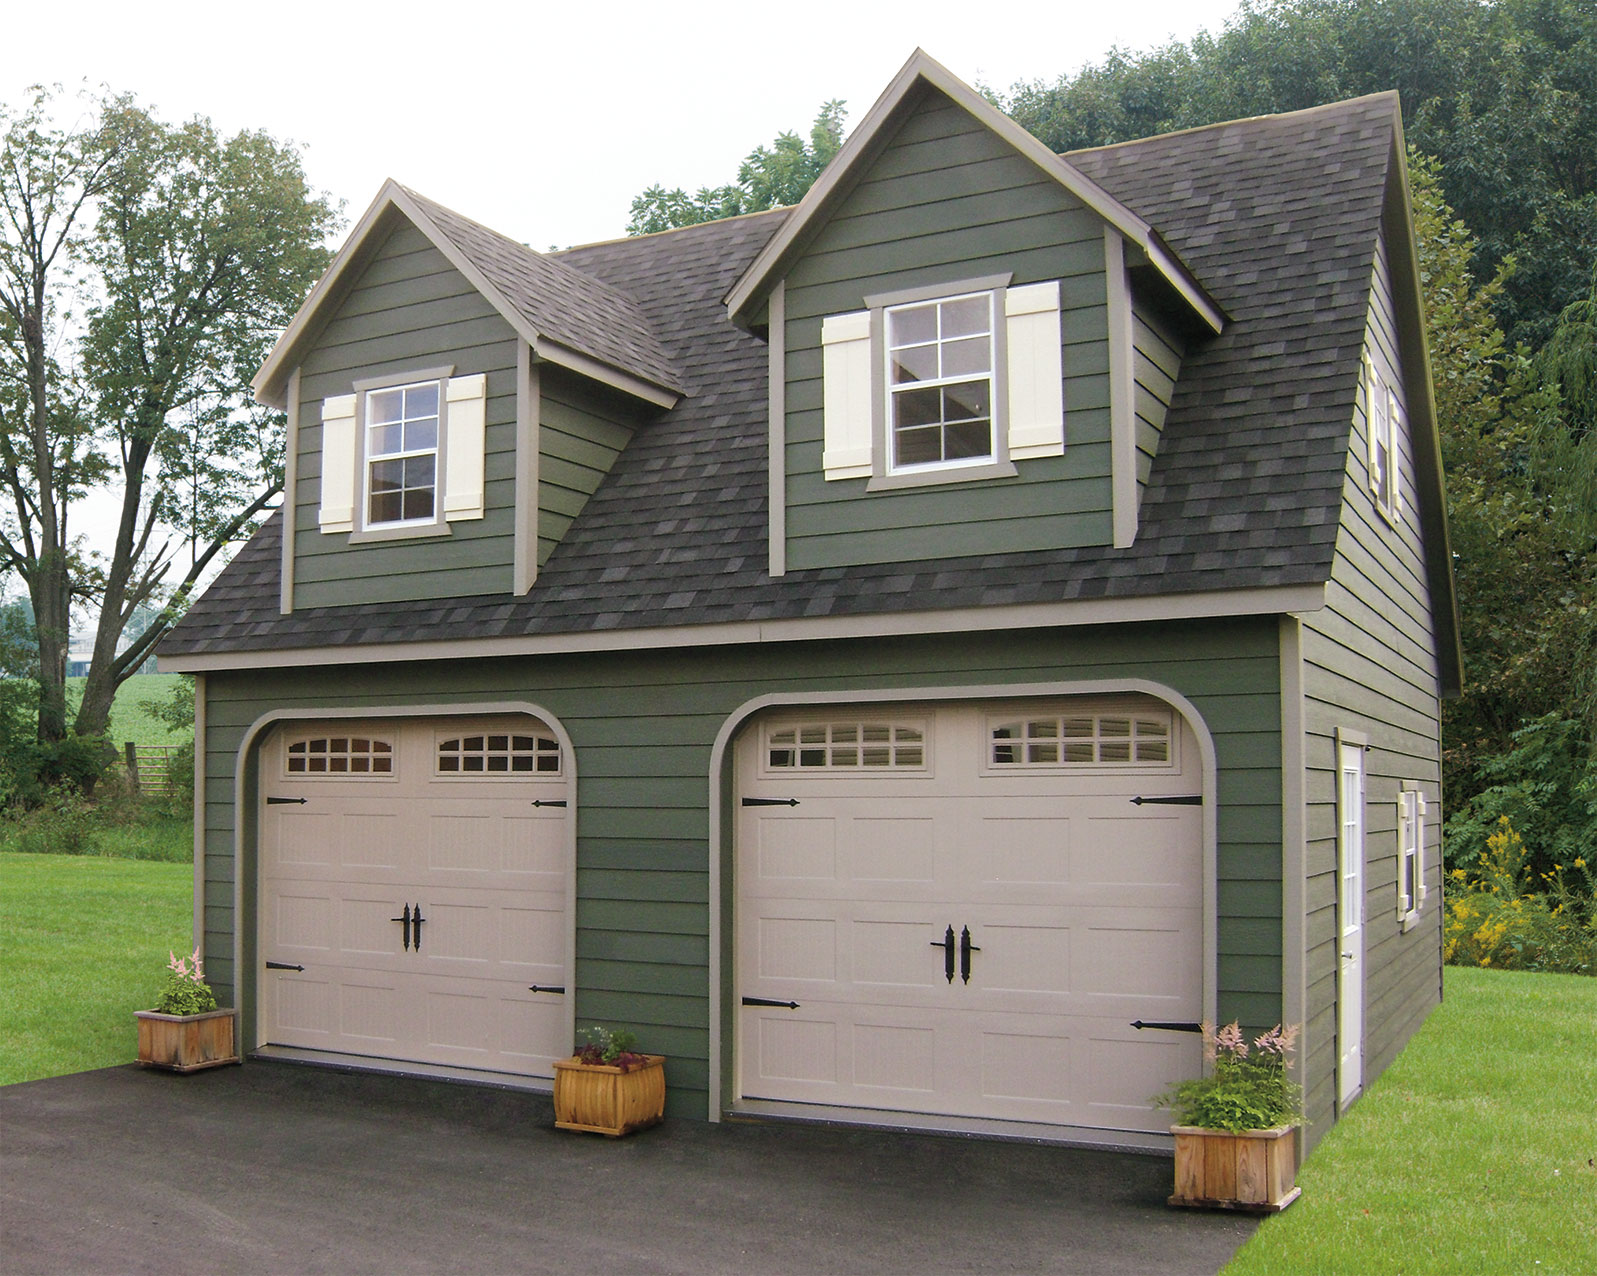 Built on site custom amish garages in oneonta ny amish for Two story car garage